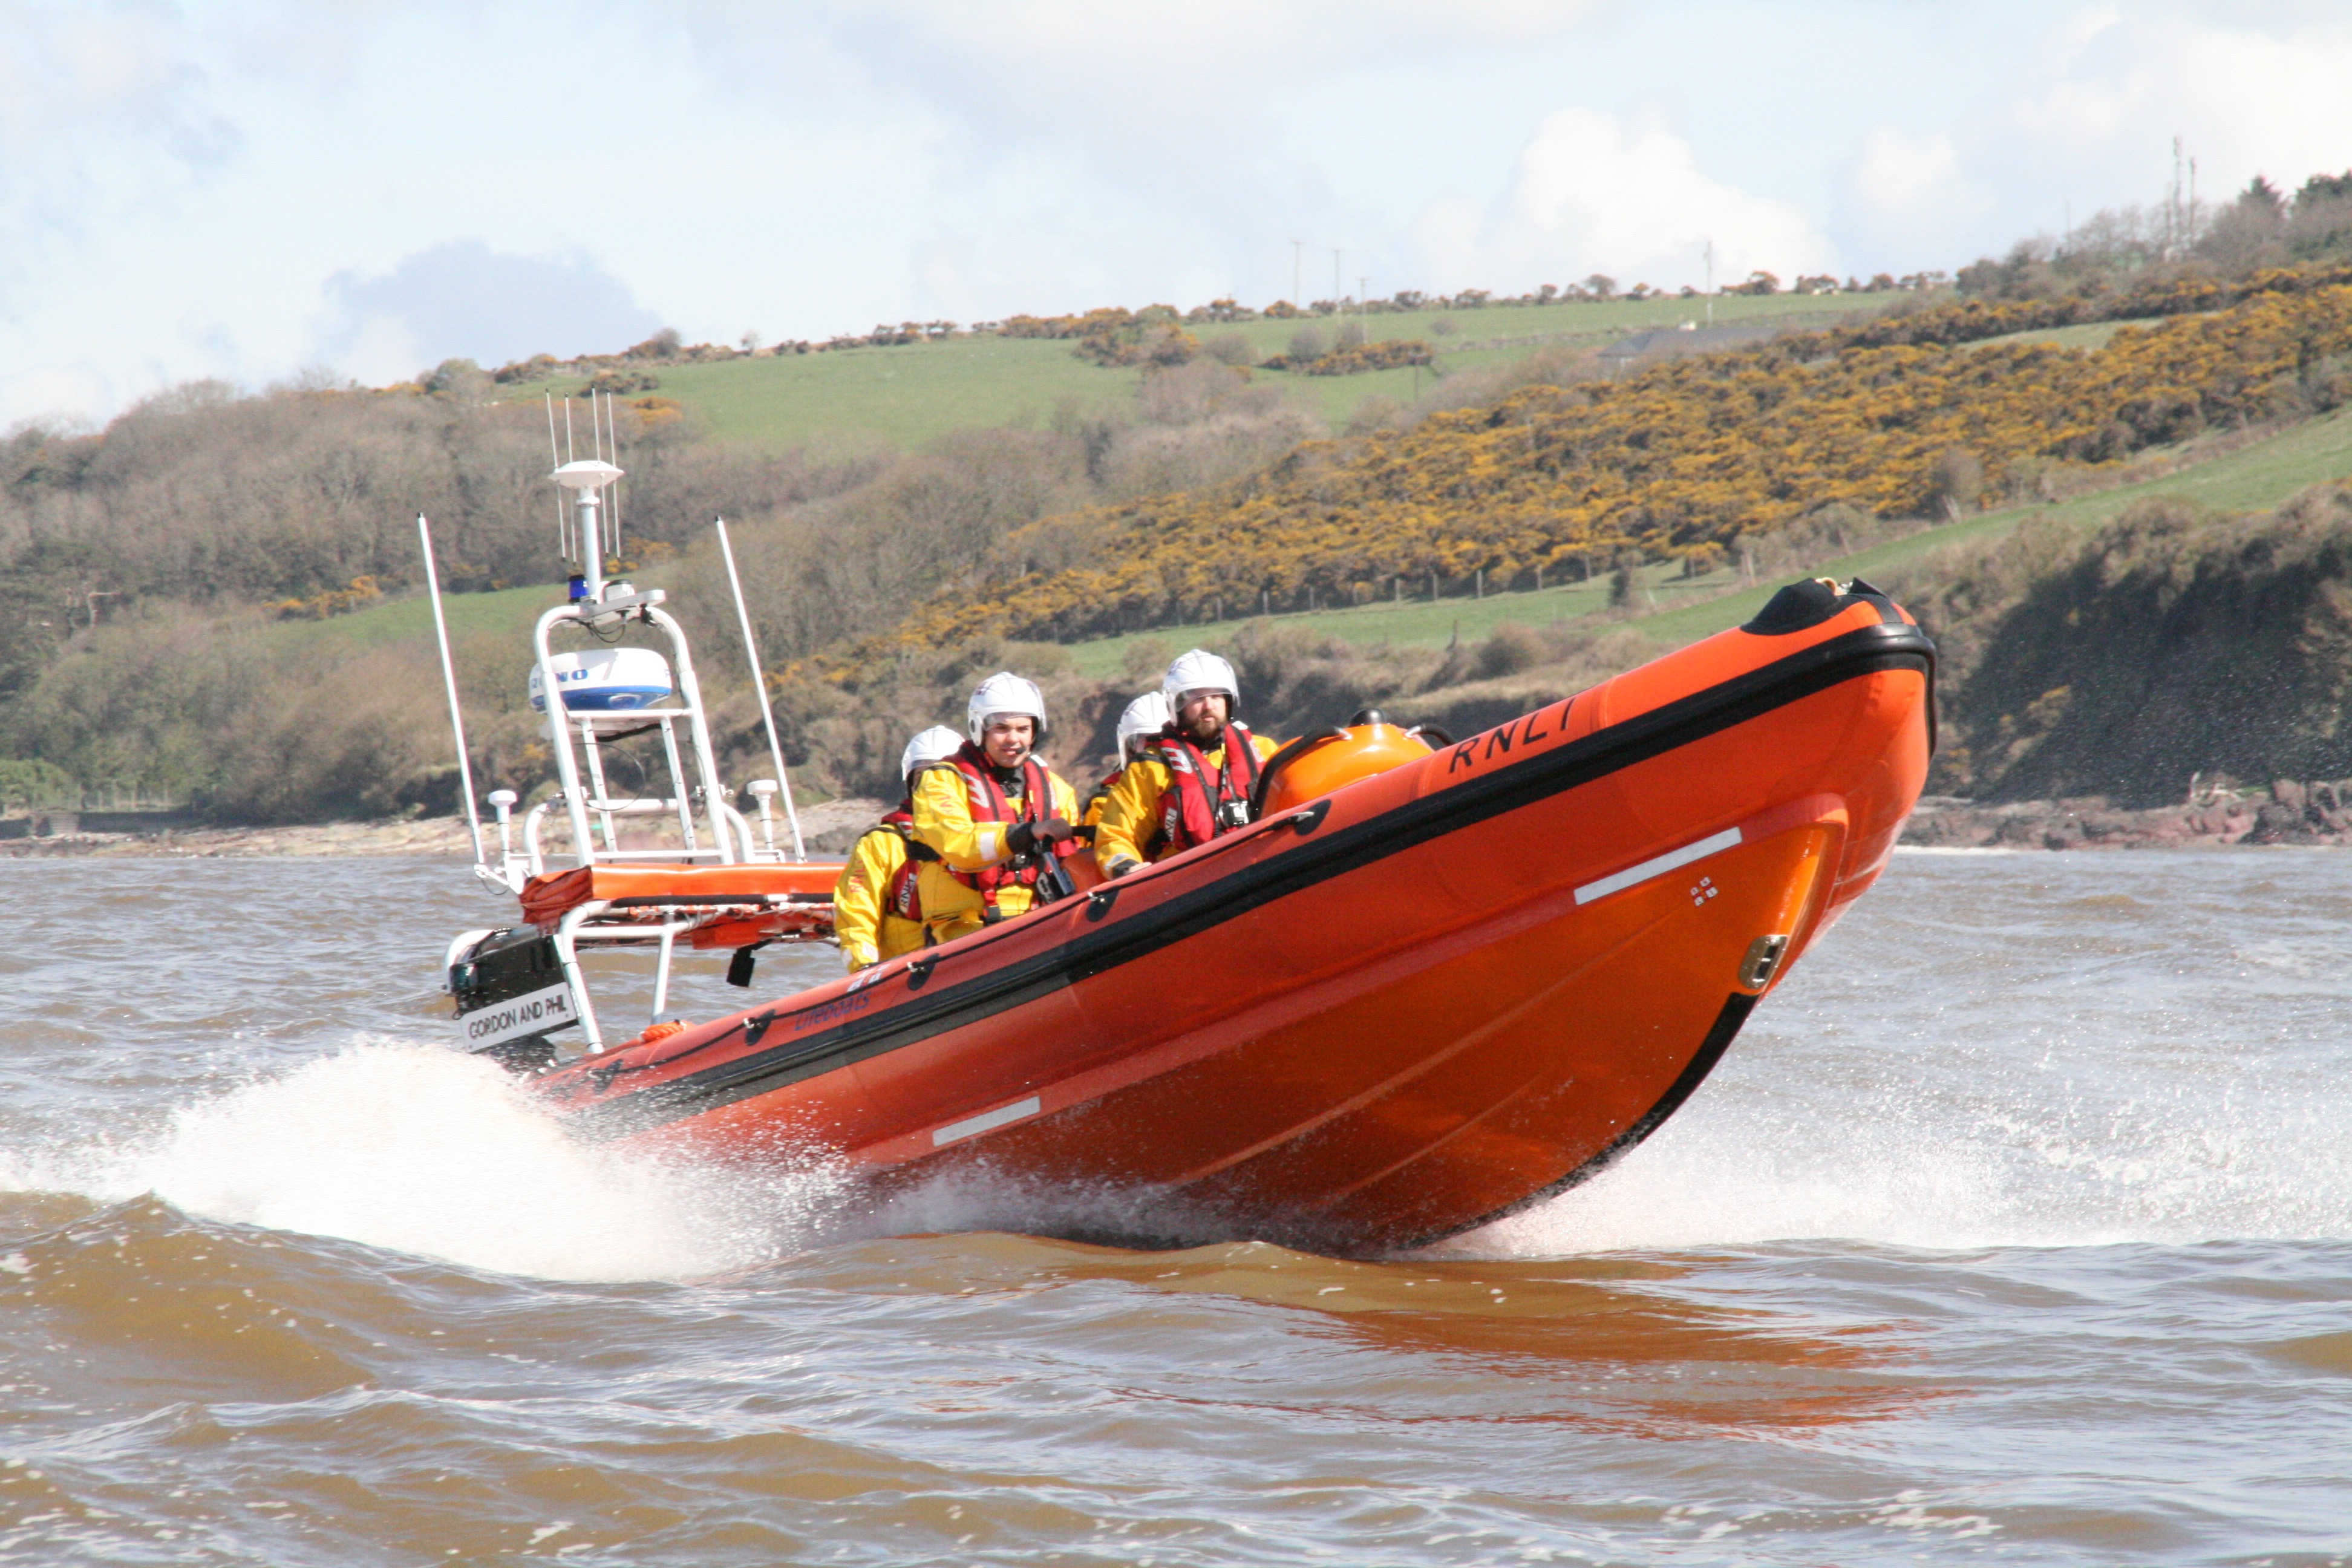 New Atlantic 85 class lifeboat arrives at Youghal RNLI